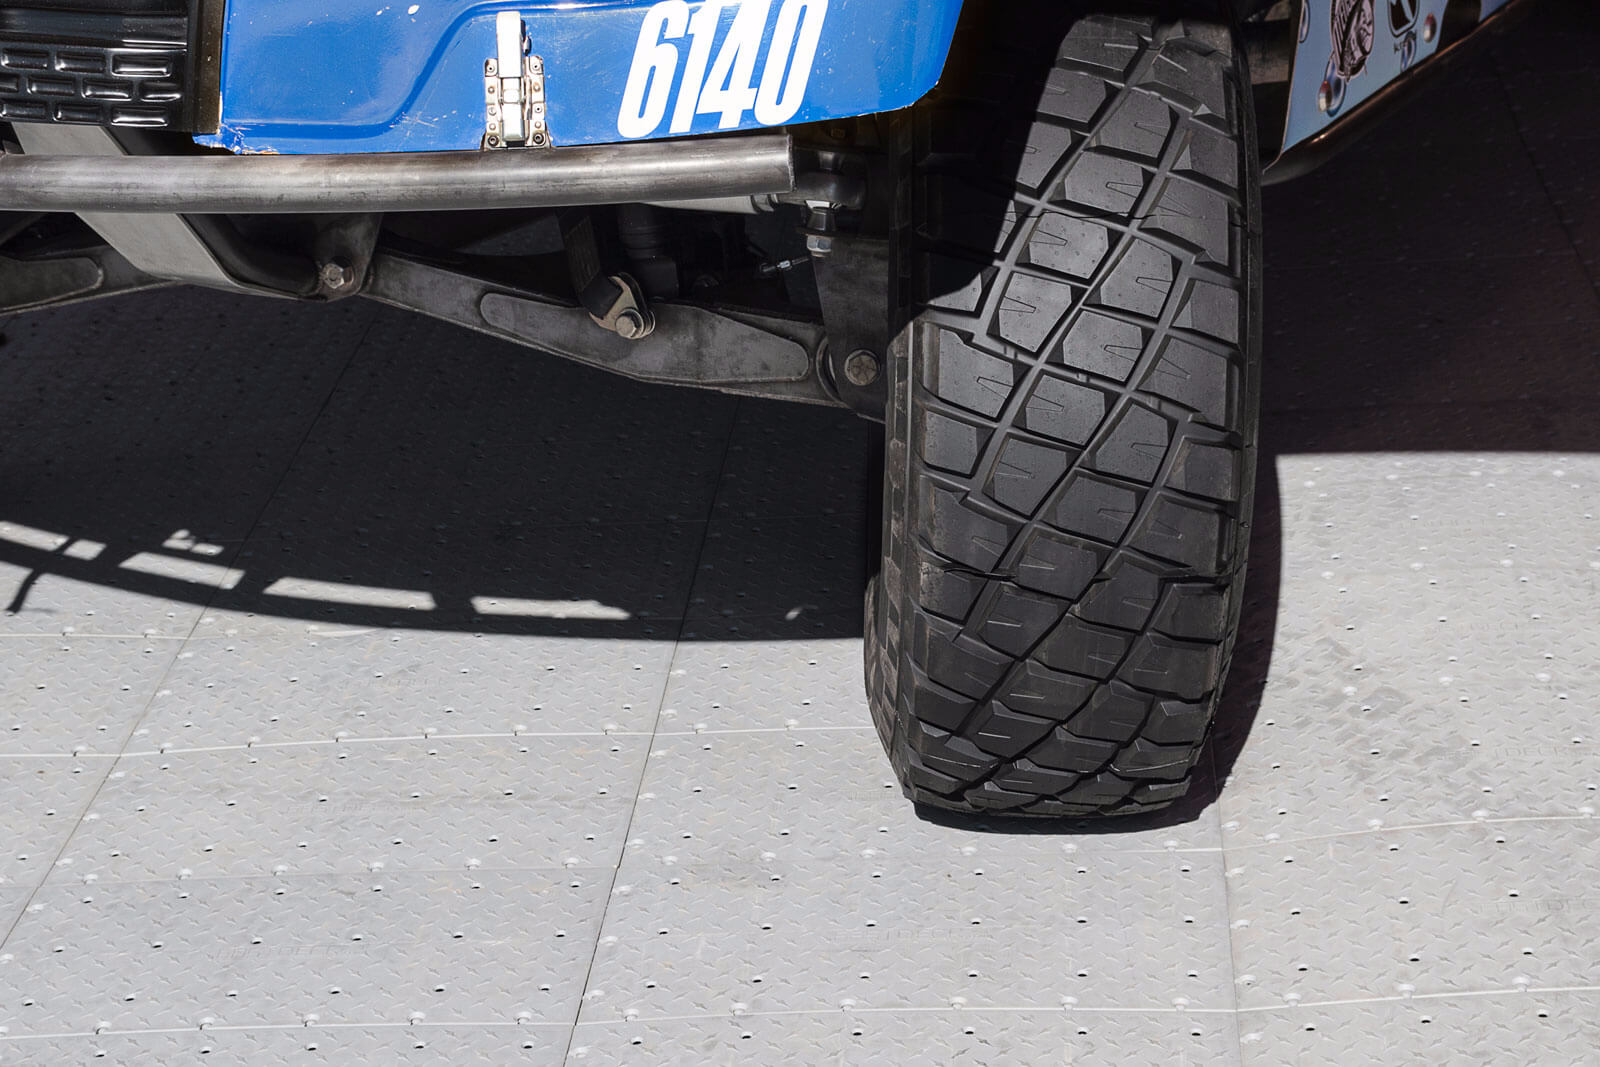 Off-road vehicle on FastDeck flooring